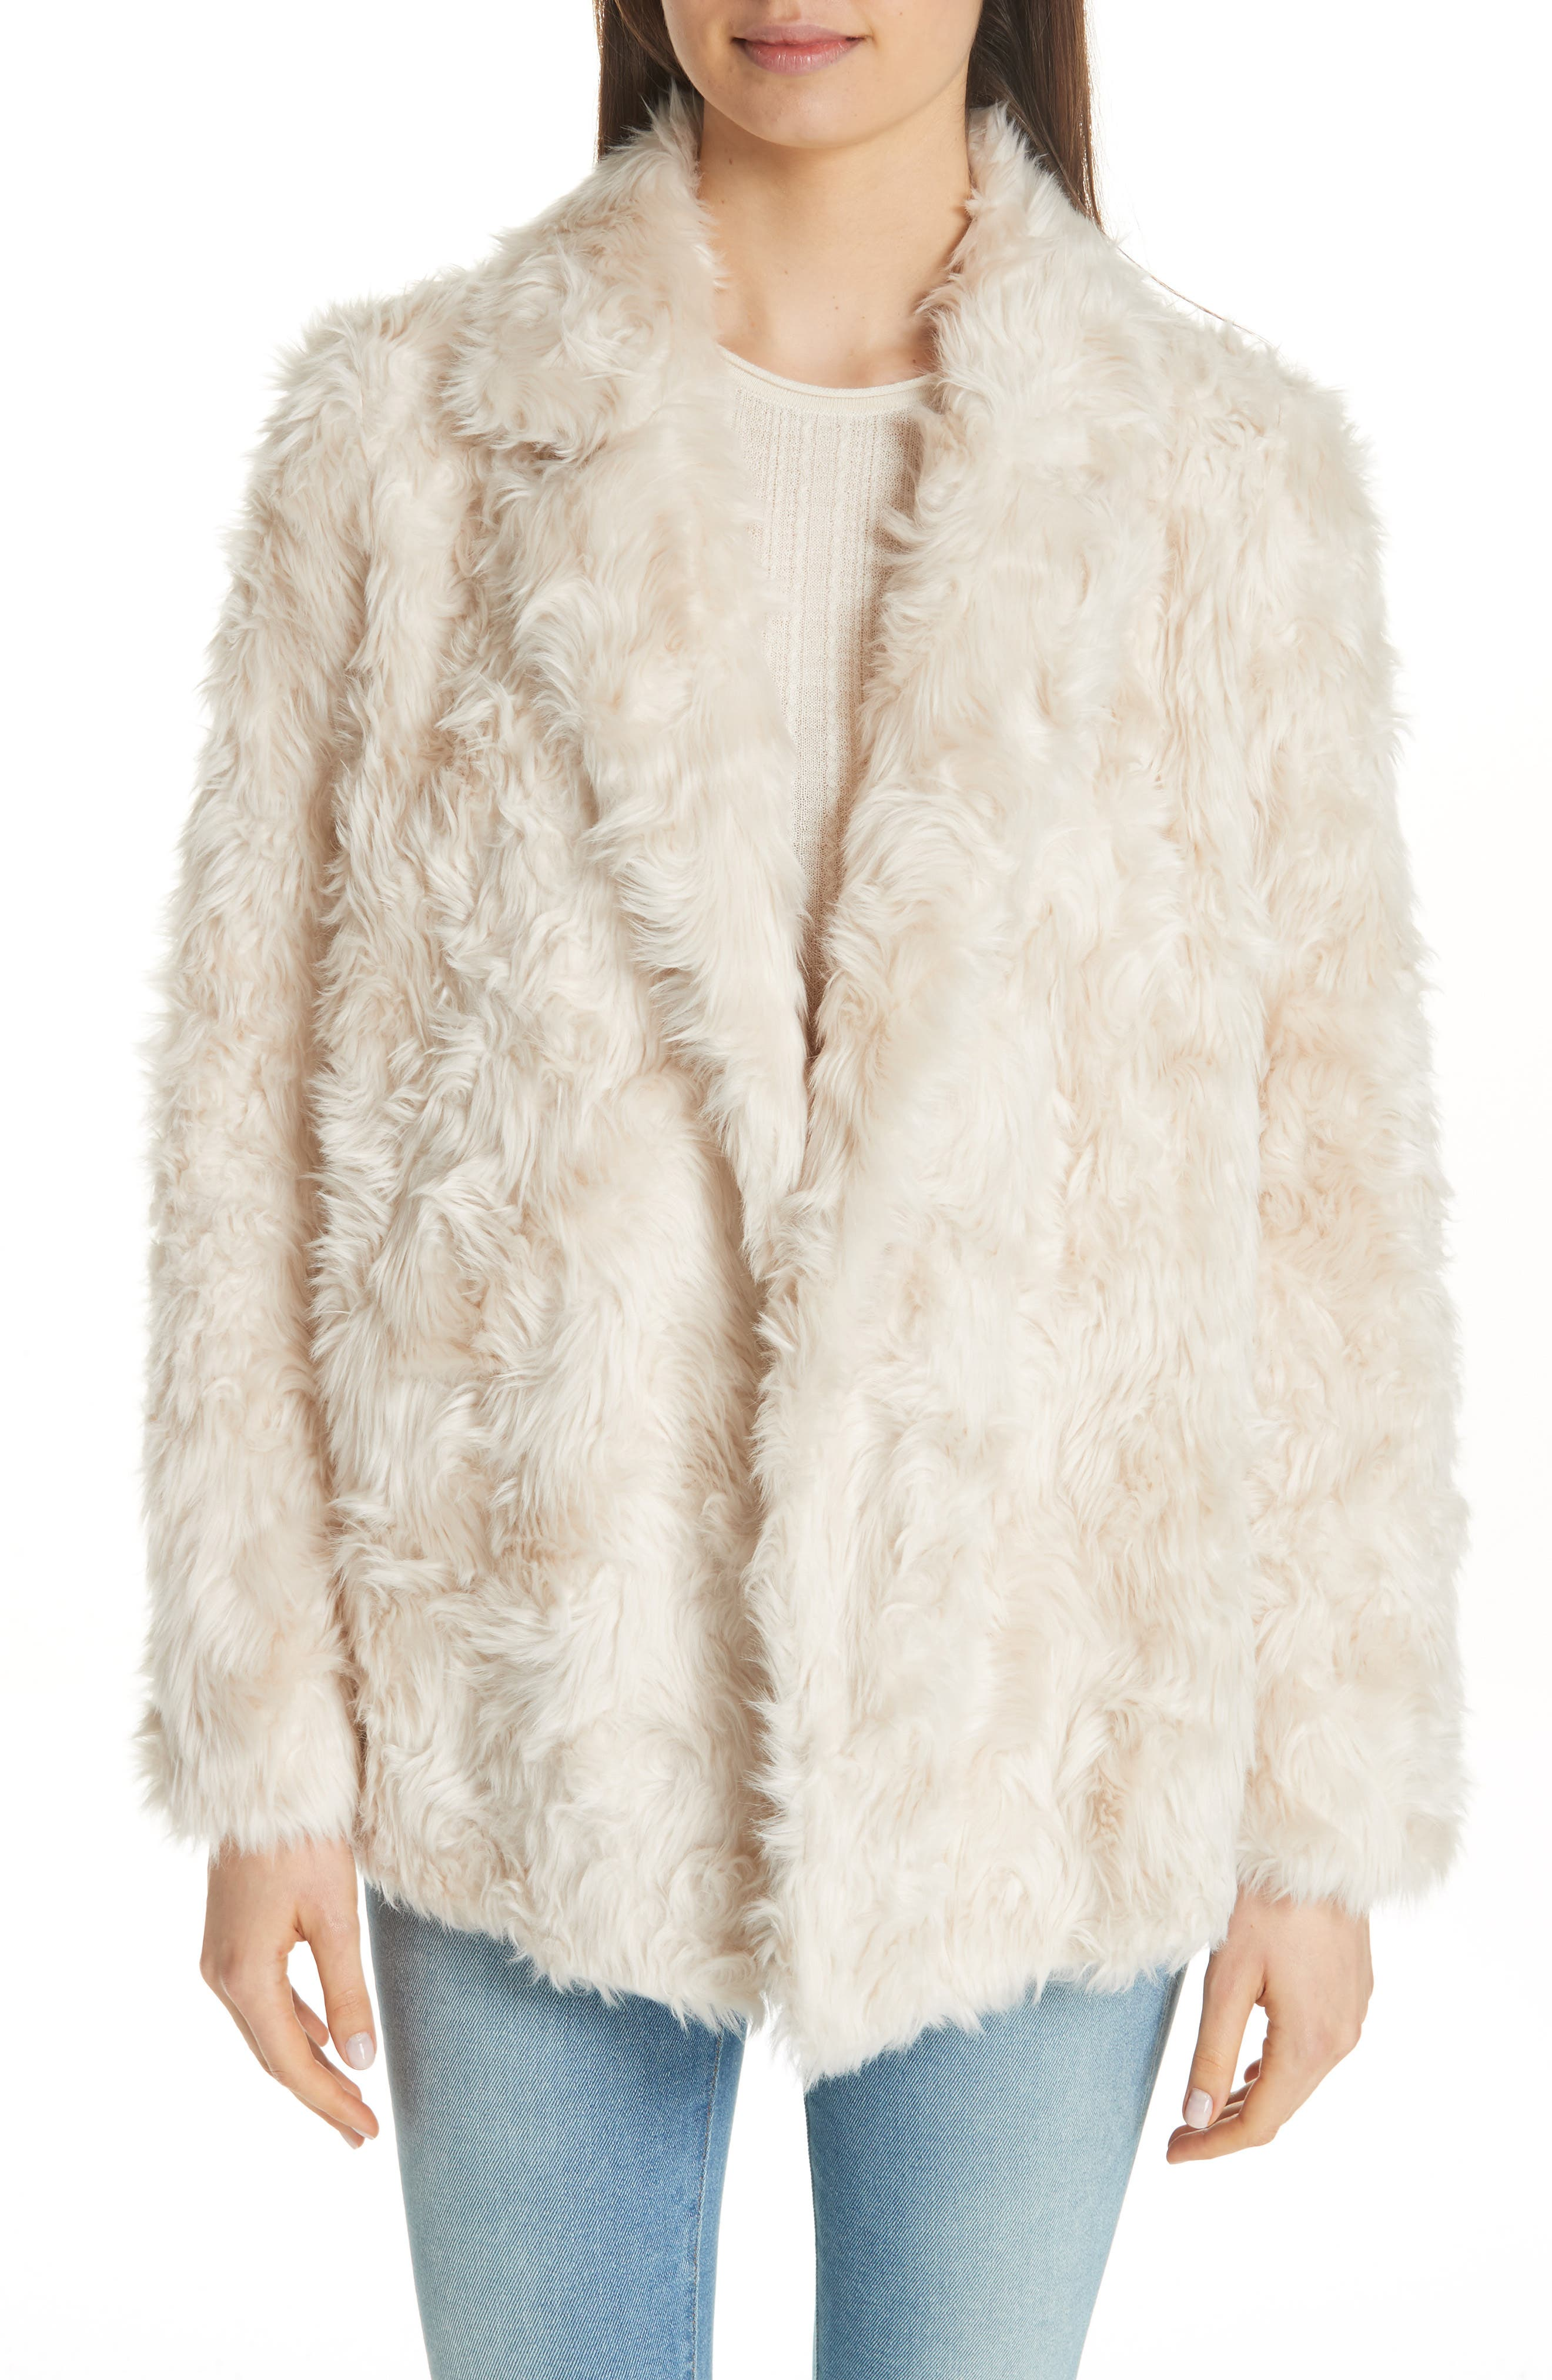 THEORY, Clairene Faux Fur Jacket, Main thumbnail 1, color, 907